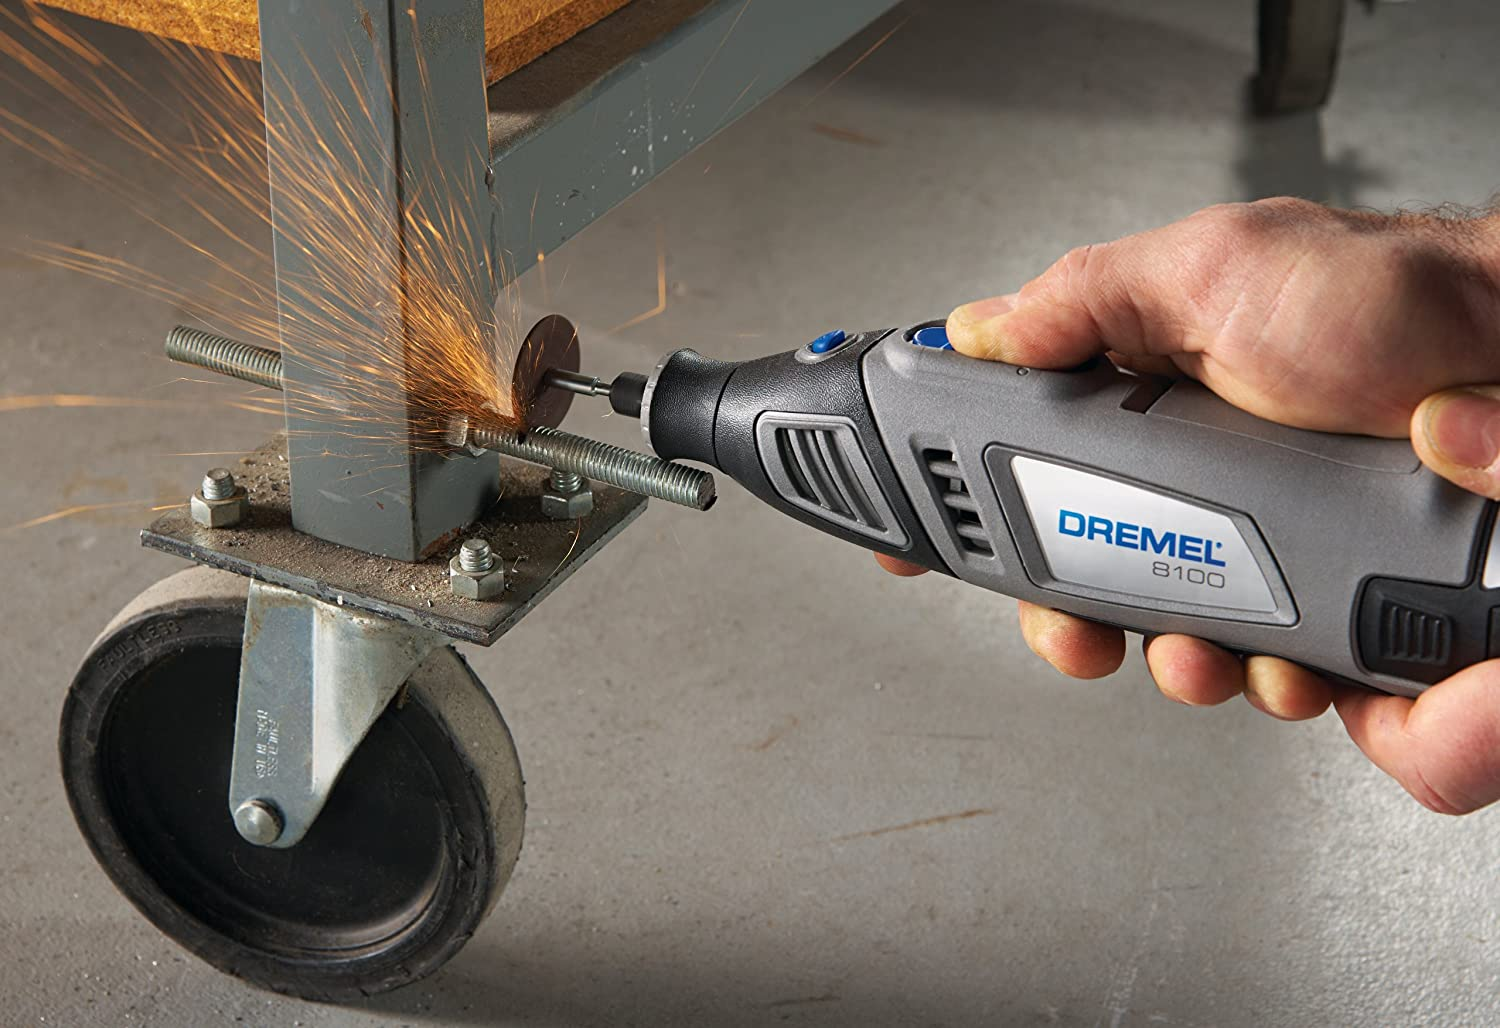 using a Dremel 8100 to cut through a lag bolt